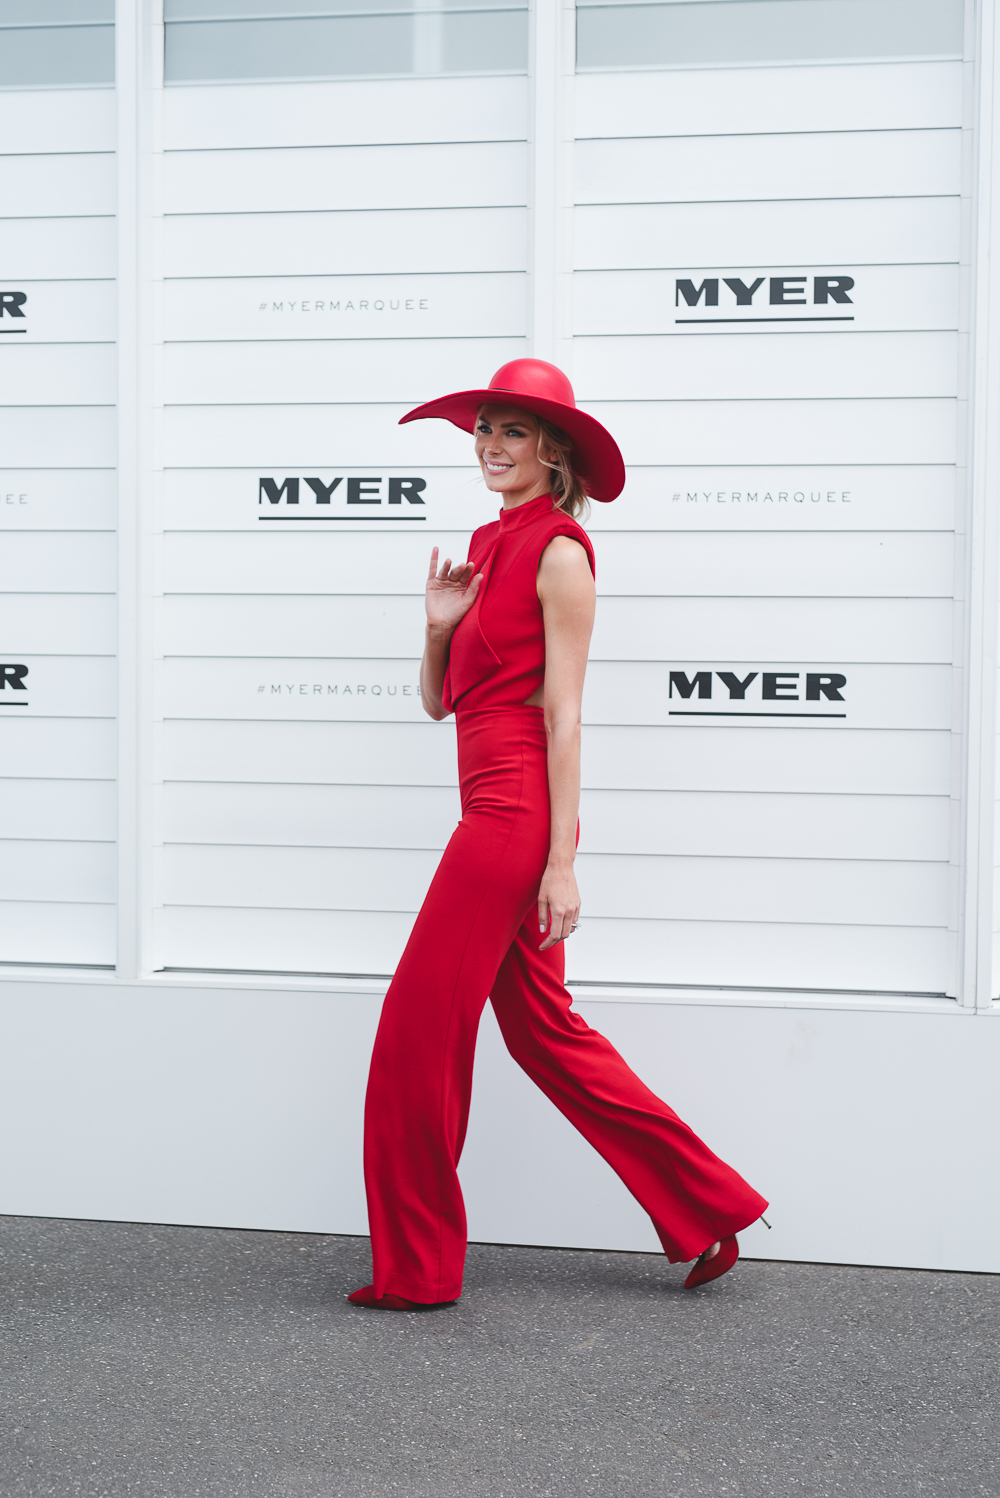 melbourne-cup-day-street-style_0041-edit